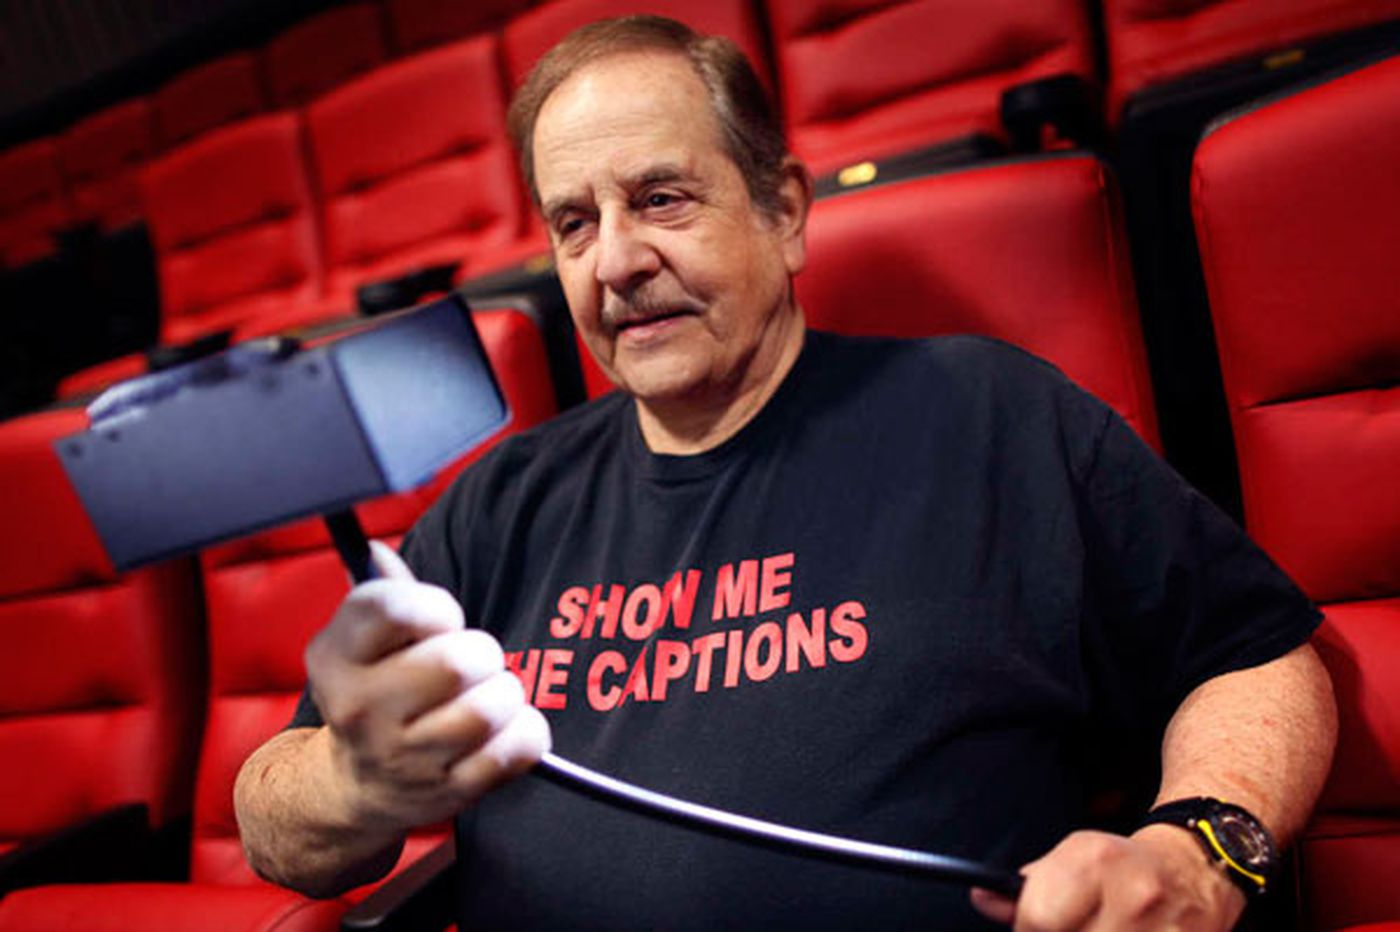 At the movies, caption devices help the hearing-impaired